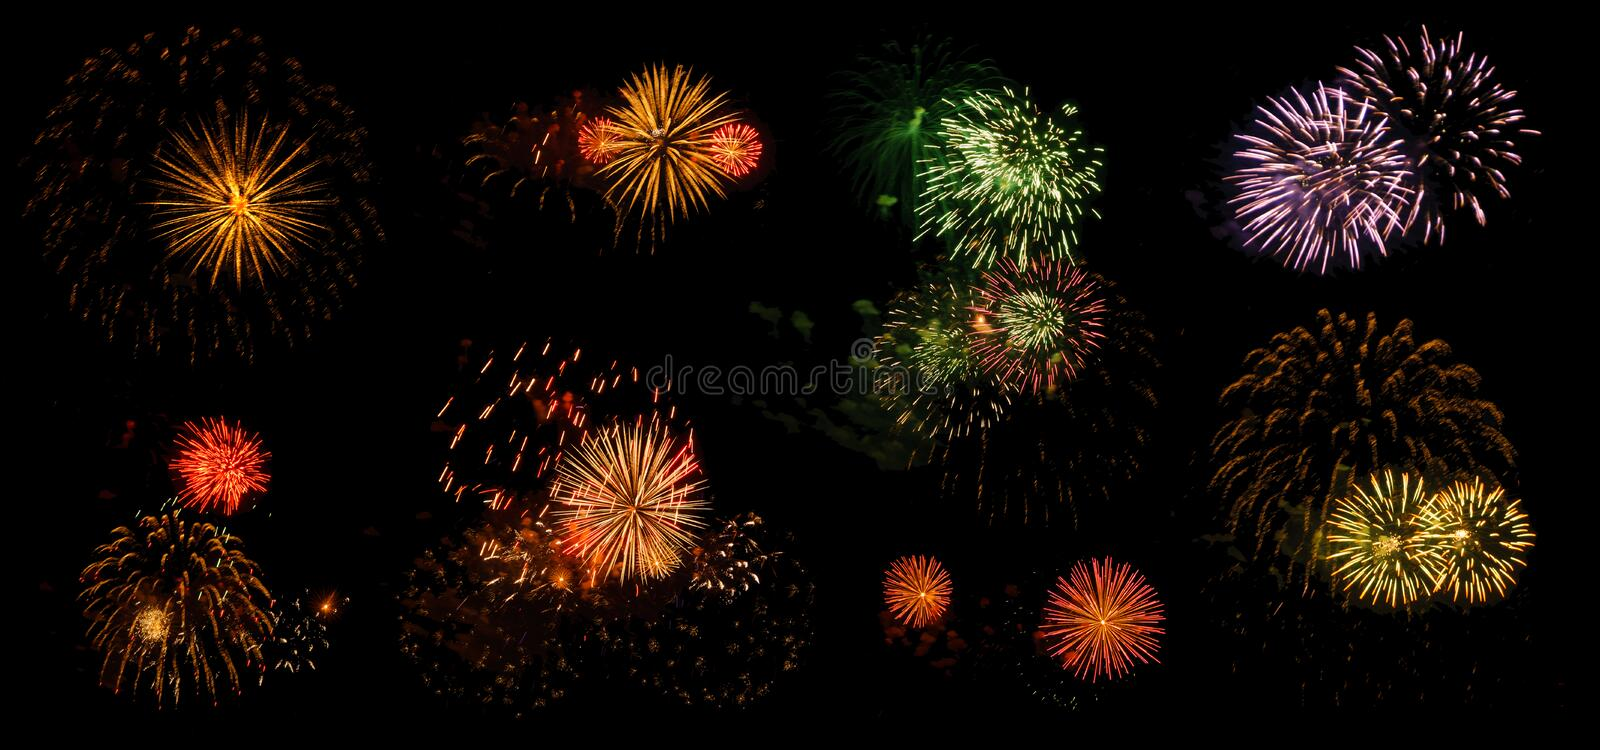 Fireworks on a black background isolated royalty free stock photo